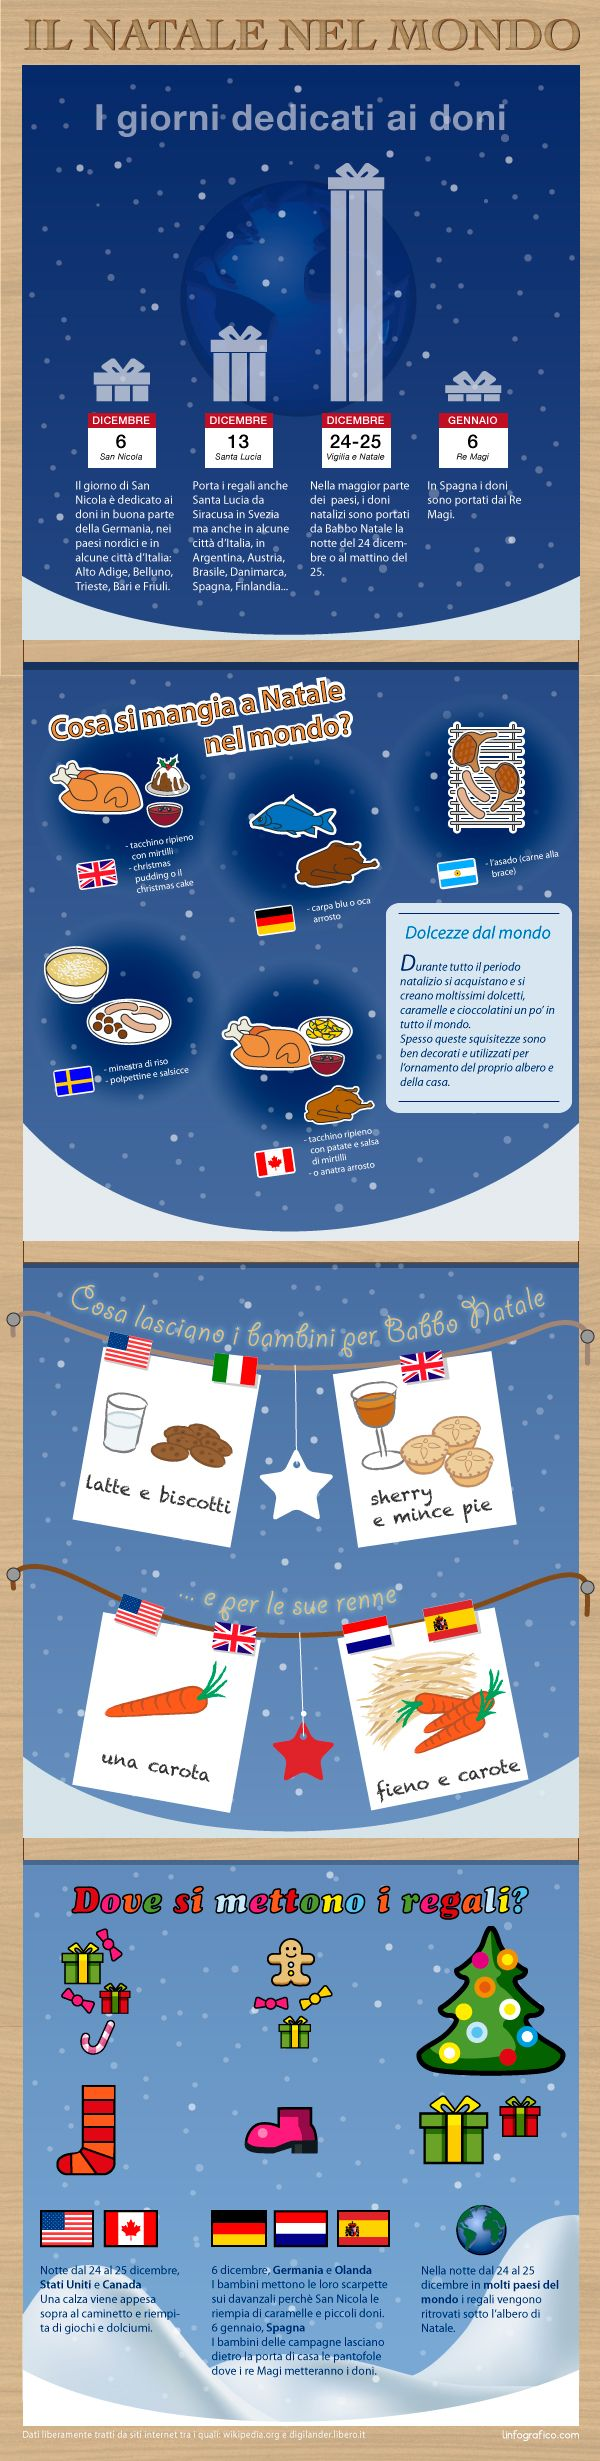 Il Natale nel mondo - Do you fancy an infographic? If you want your own please visit http://www.linfografico.com/prezzi/ Vuoi realizzare un'infografica tutta tua? Visita http://www.linfografico.com/prezzi/